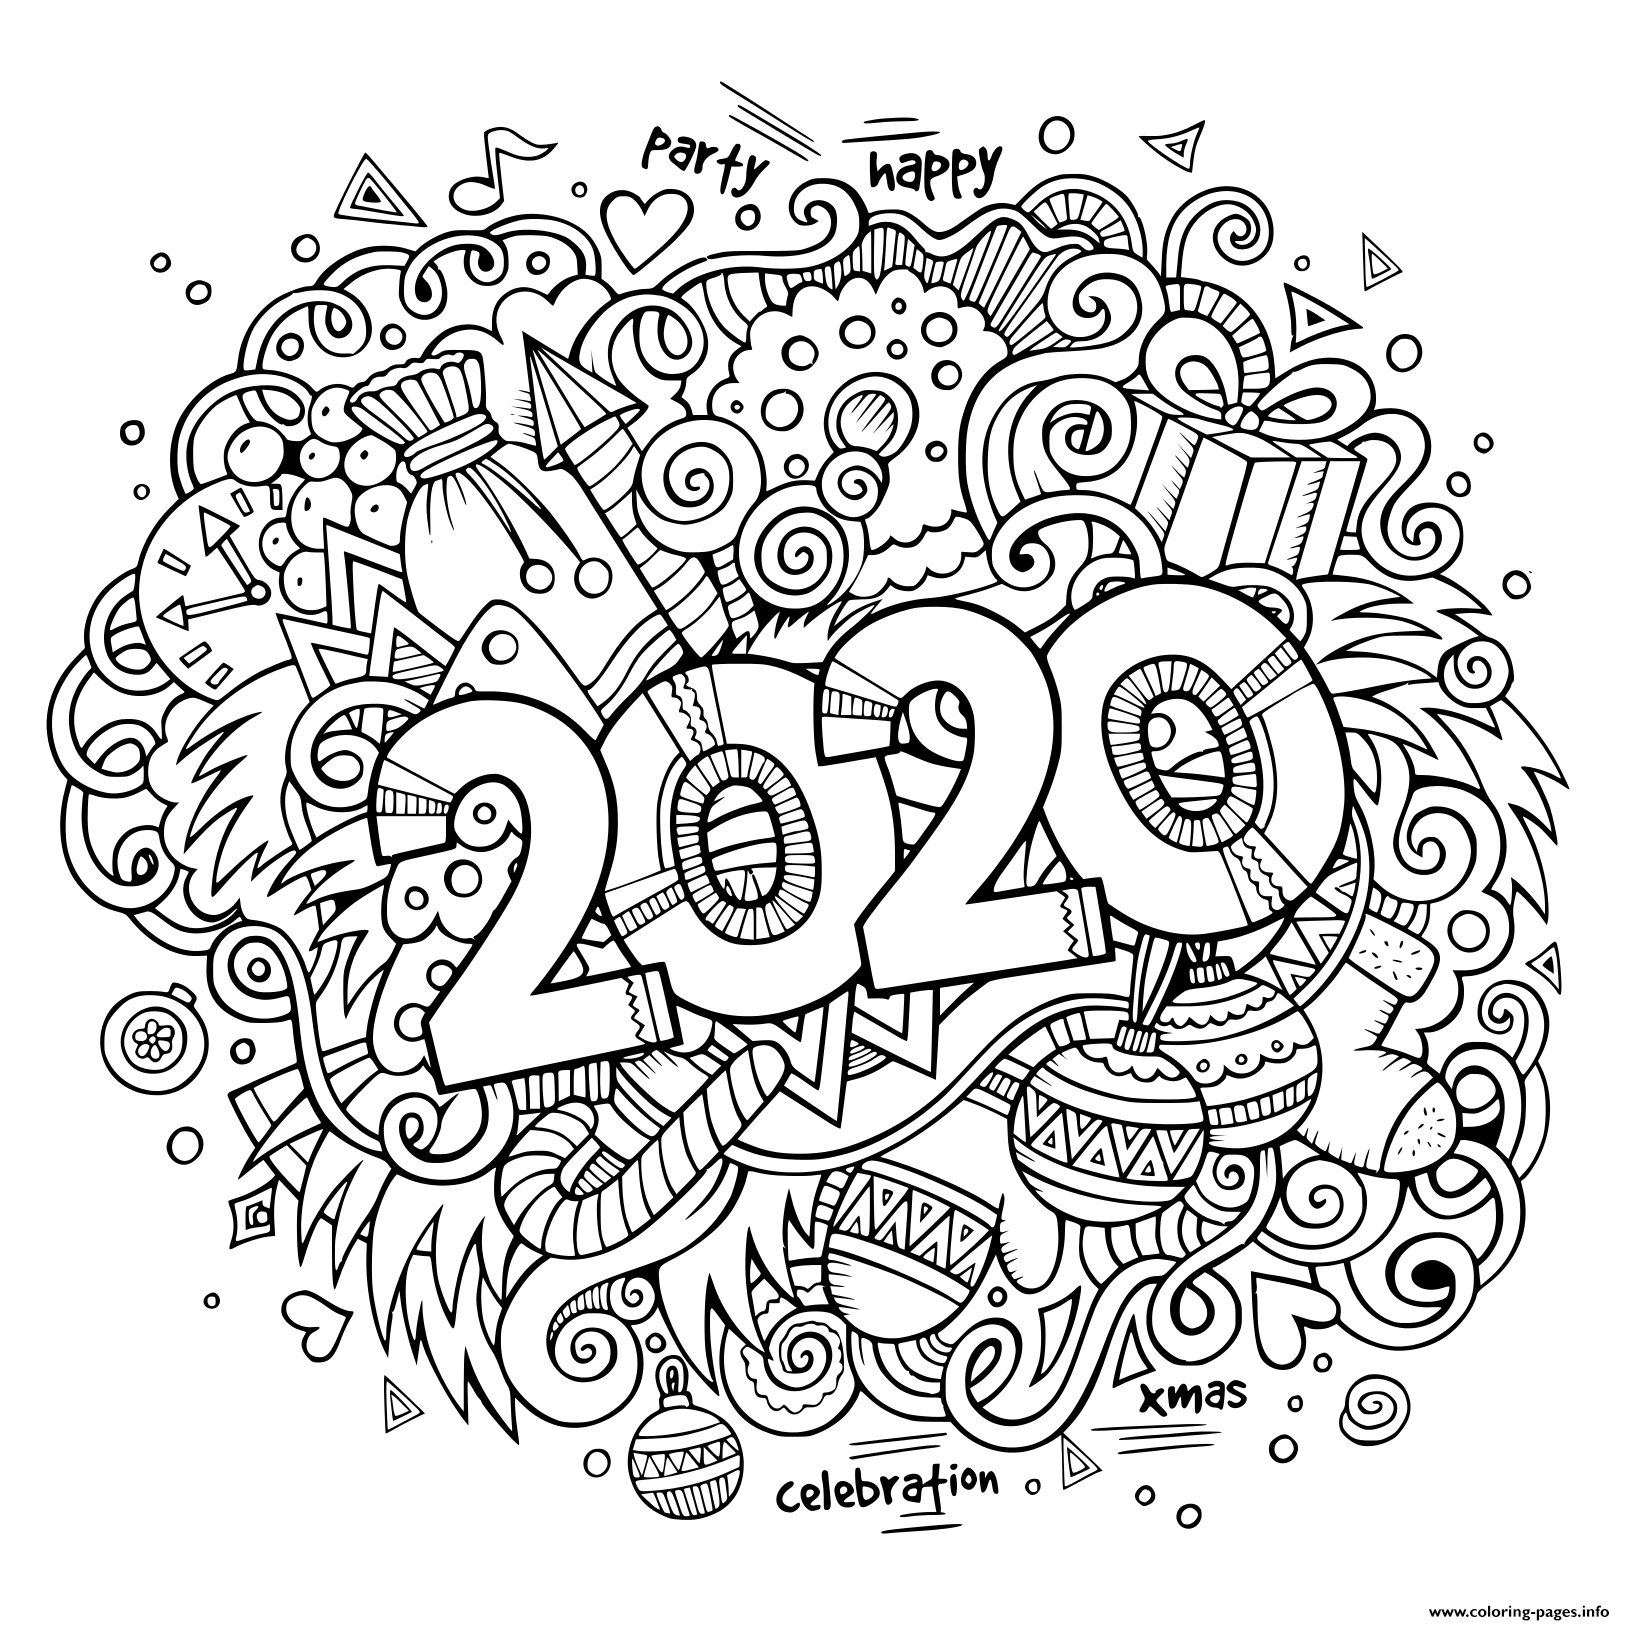 coloring pages 2020 new year 2020 inside floral frame adult coloring pages 2020 coloring pages